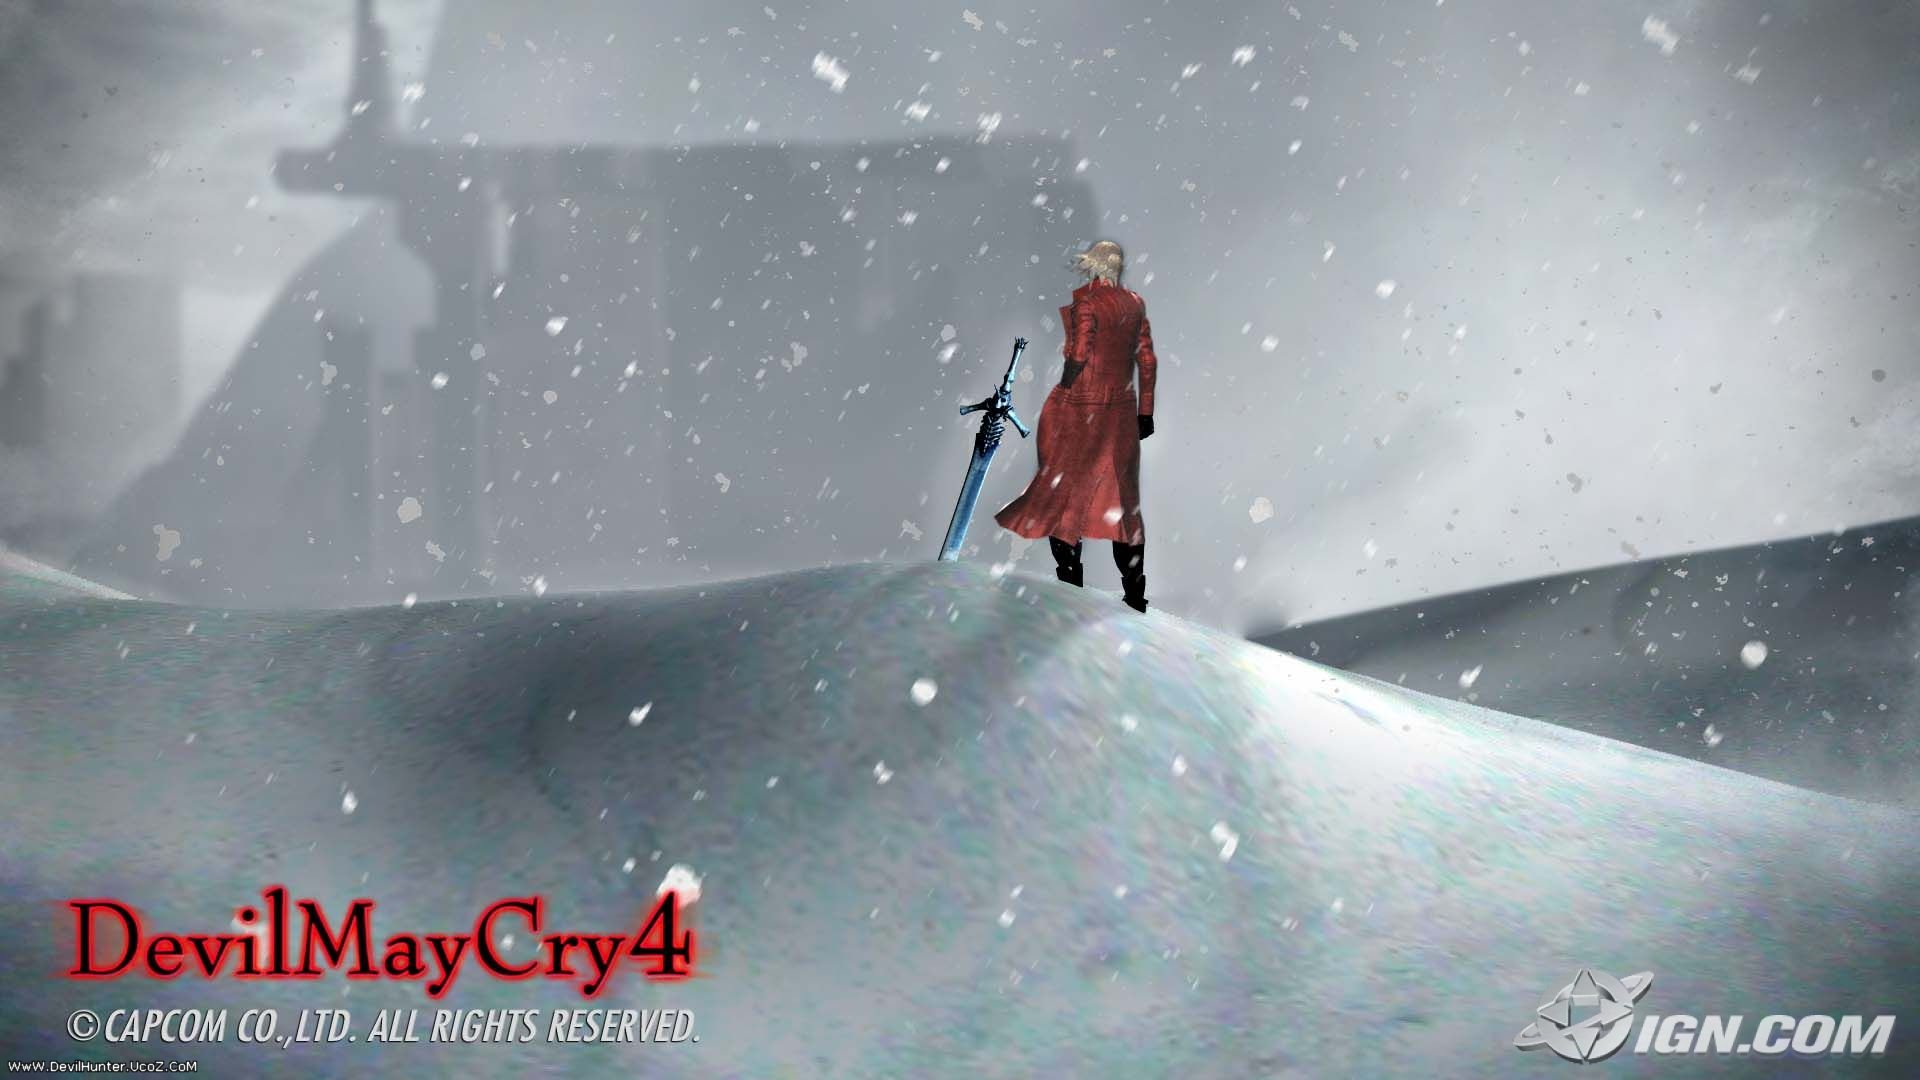 Devil May Cry 2006 wallpaper